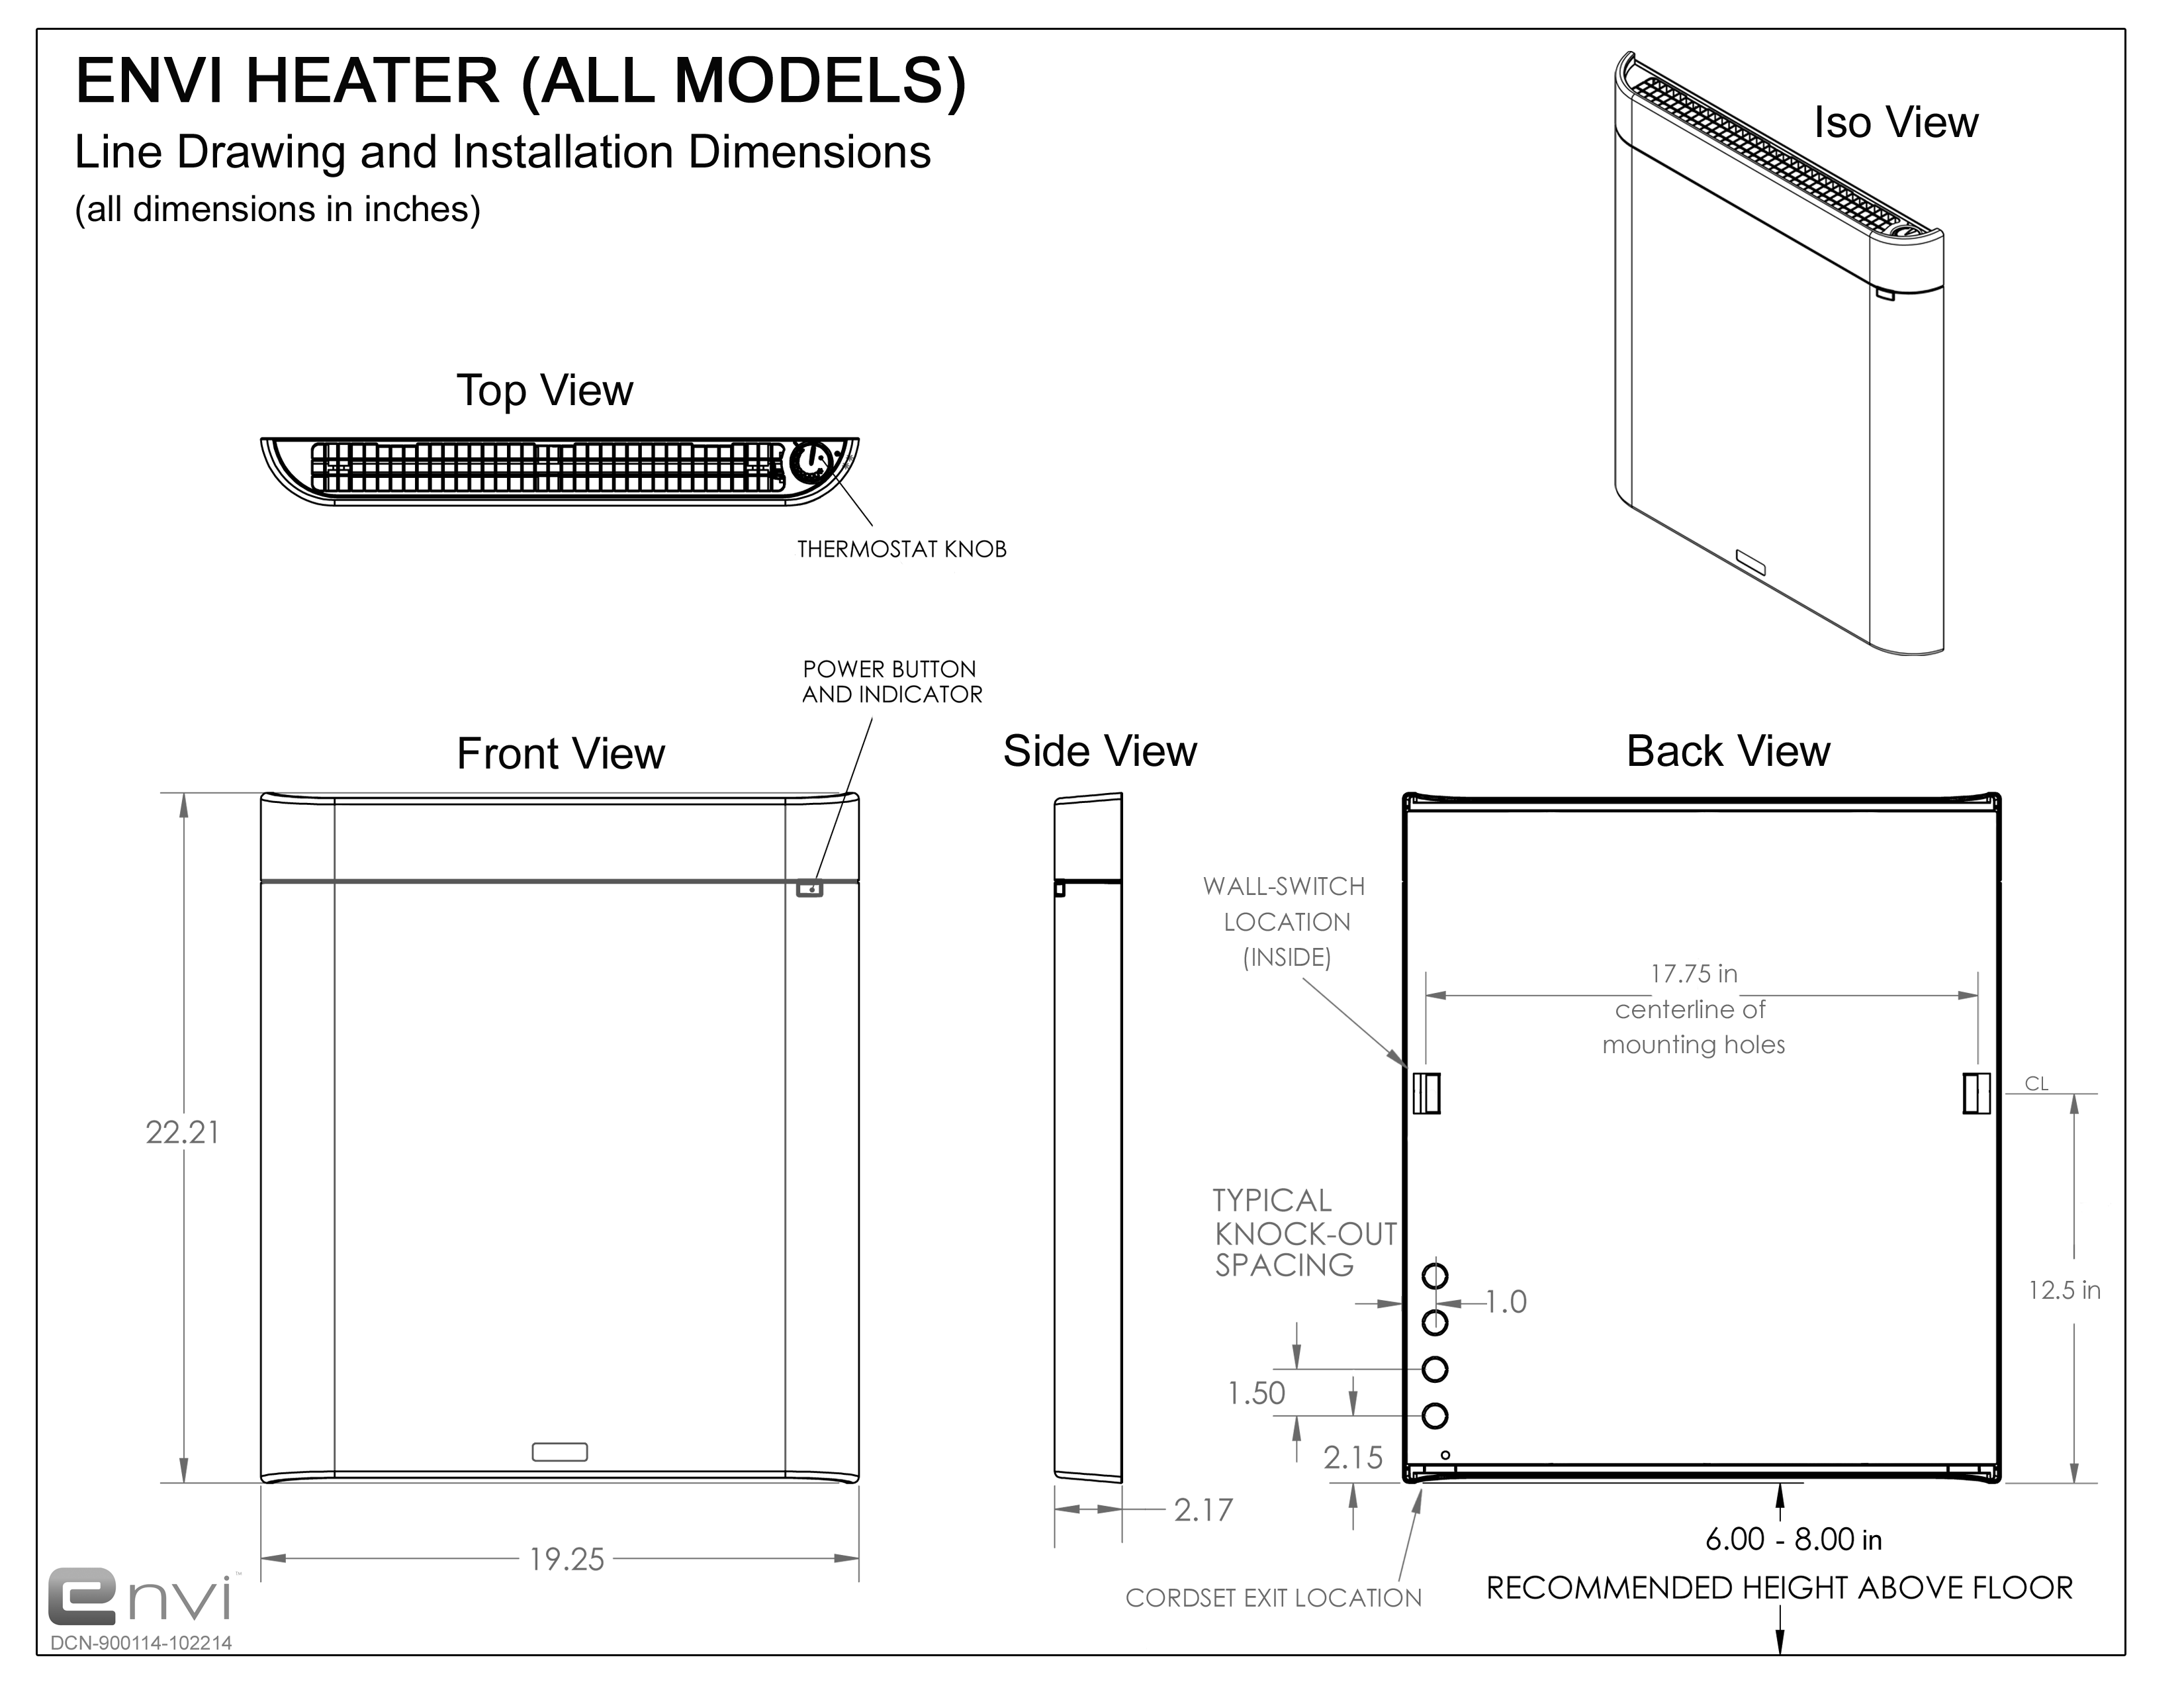 Envi heater line drawing with dimensions cut sheetg frequently envi heater line drawing with dimensions cut sheetg frequently asked questions ccuart Gallery